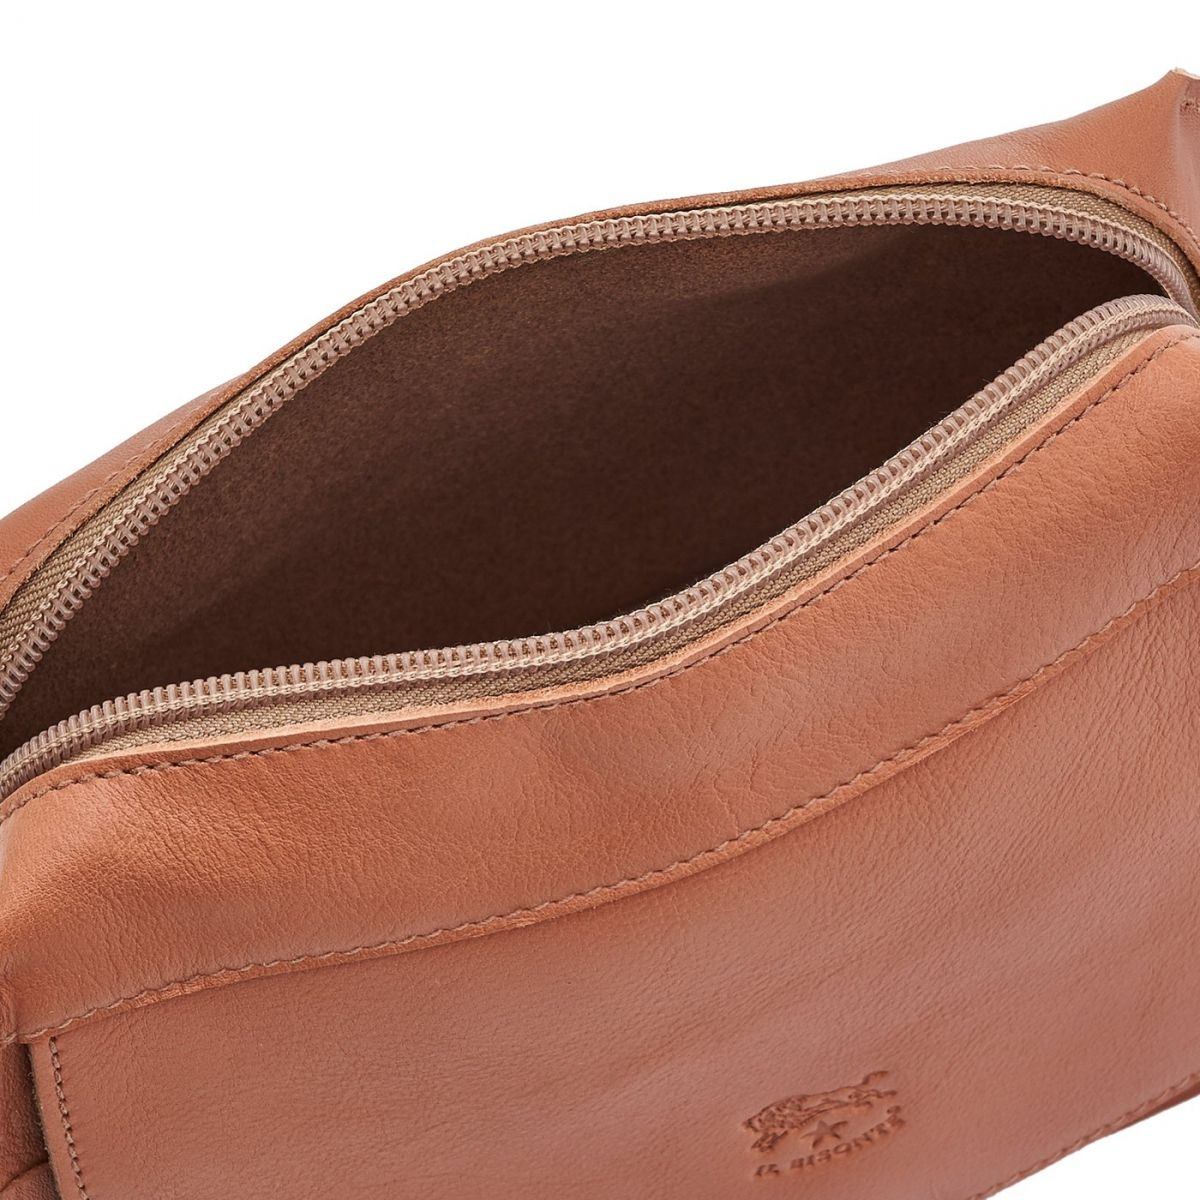 Women's Crossbody Bag Salina in Cowhide Leather BCR174 color Pink Pepper | Details